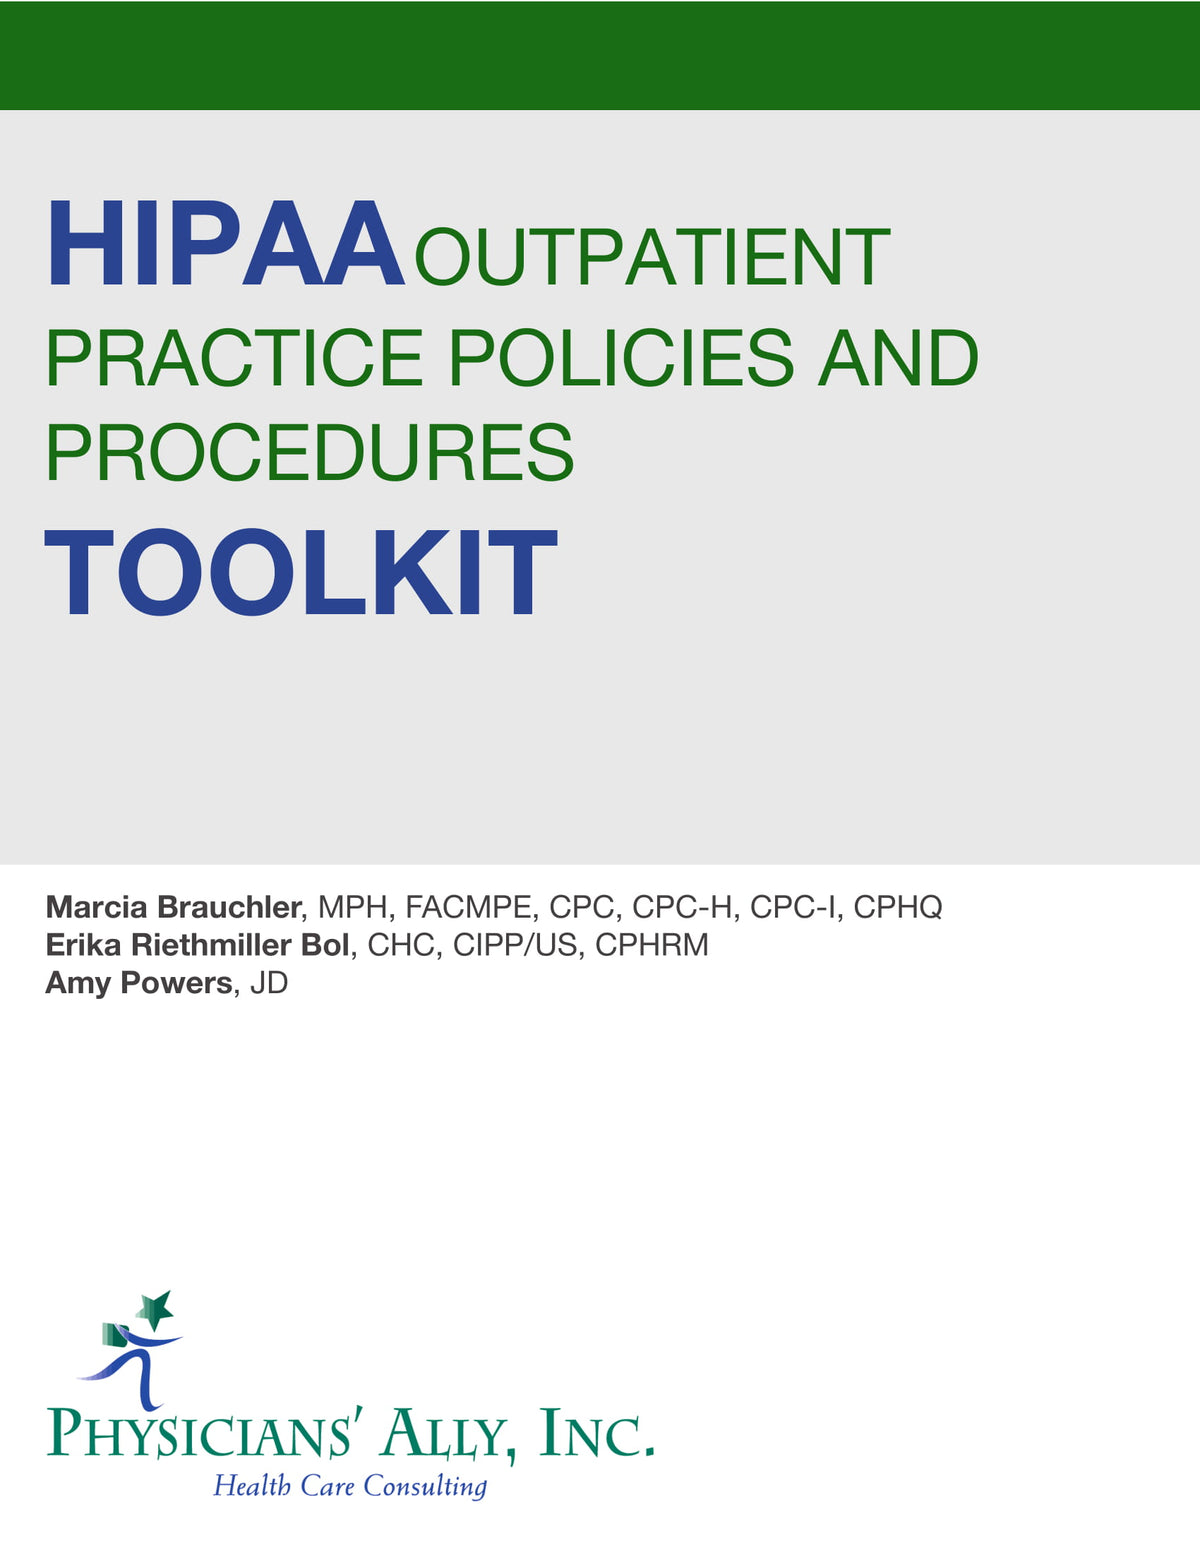 HIPAA Outpatient Practice Policies and Procedures Toolkit